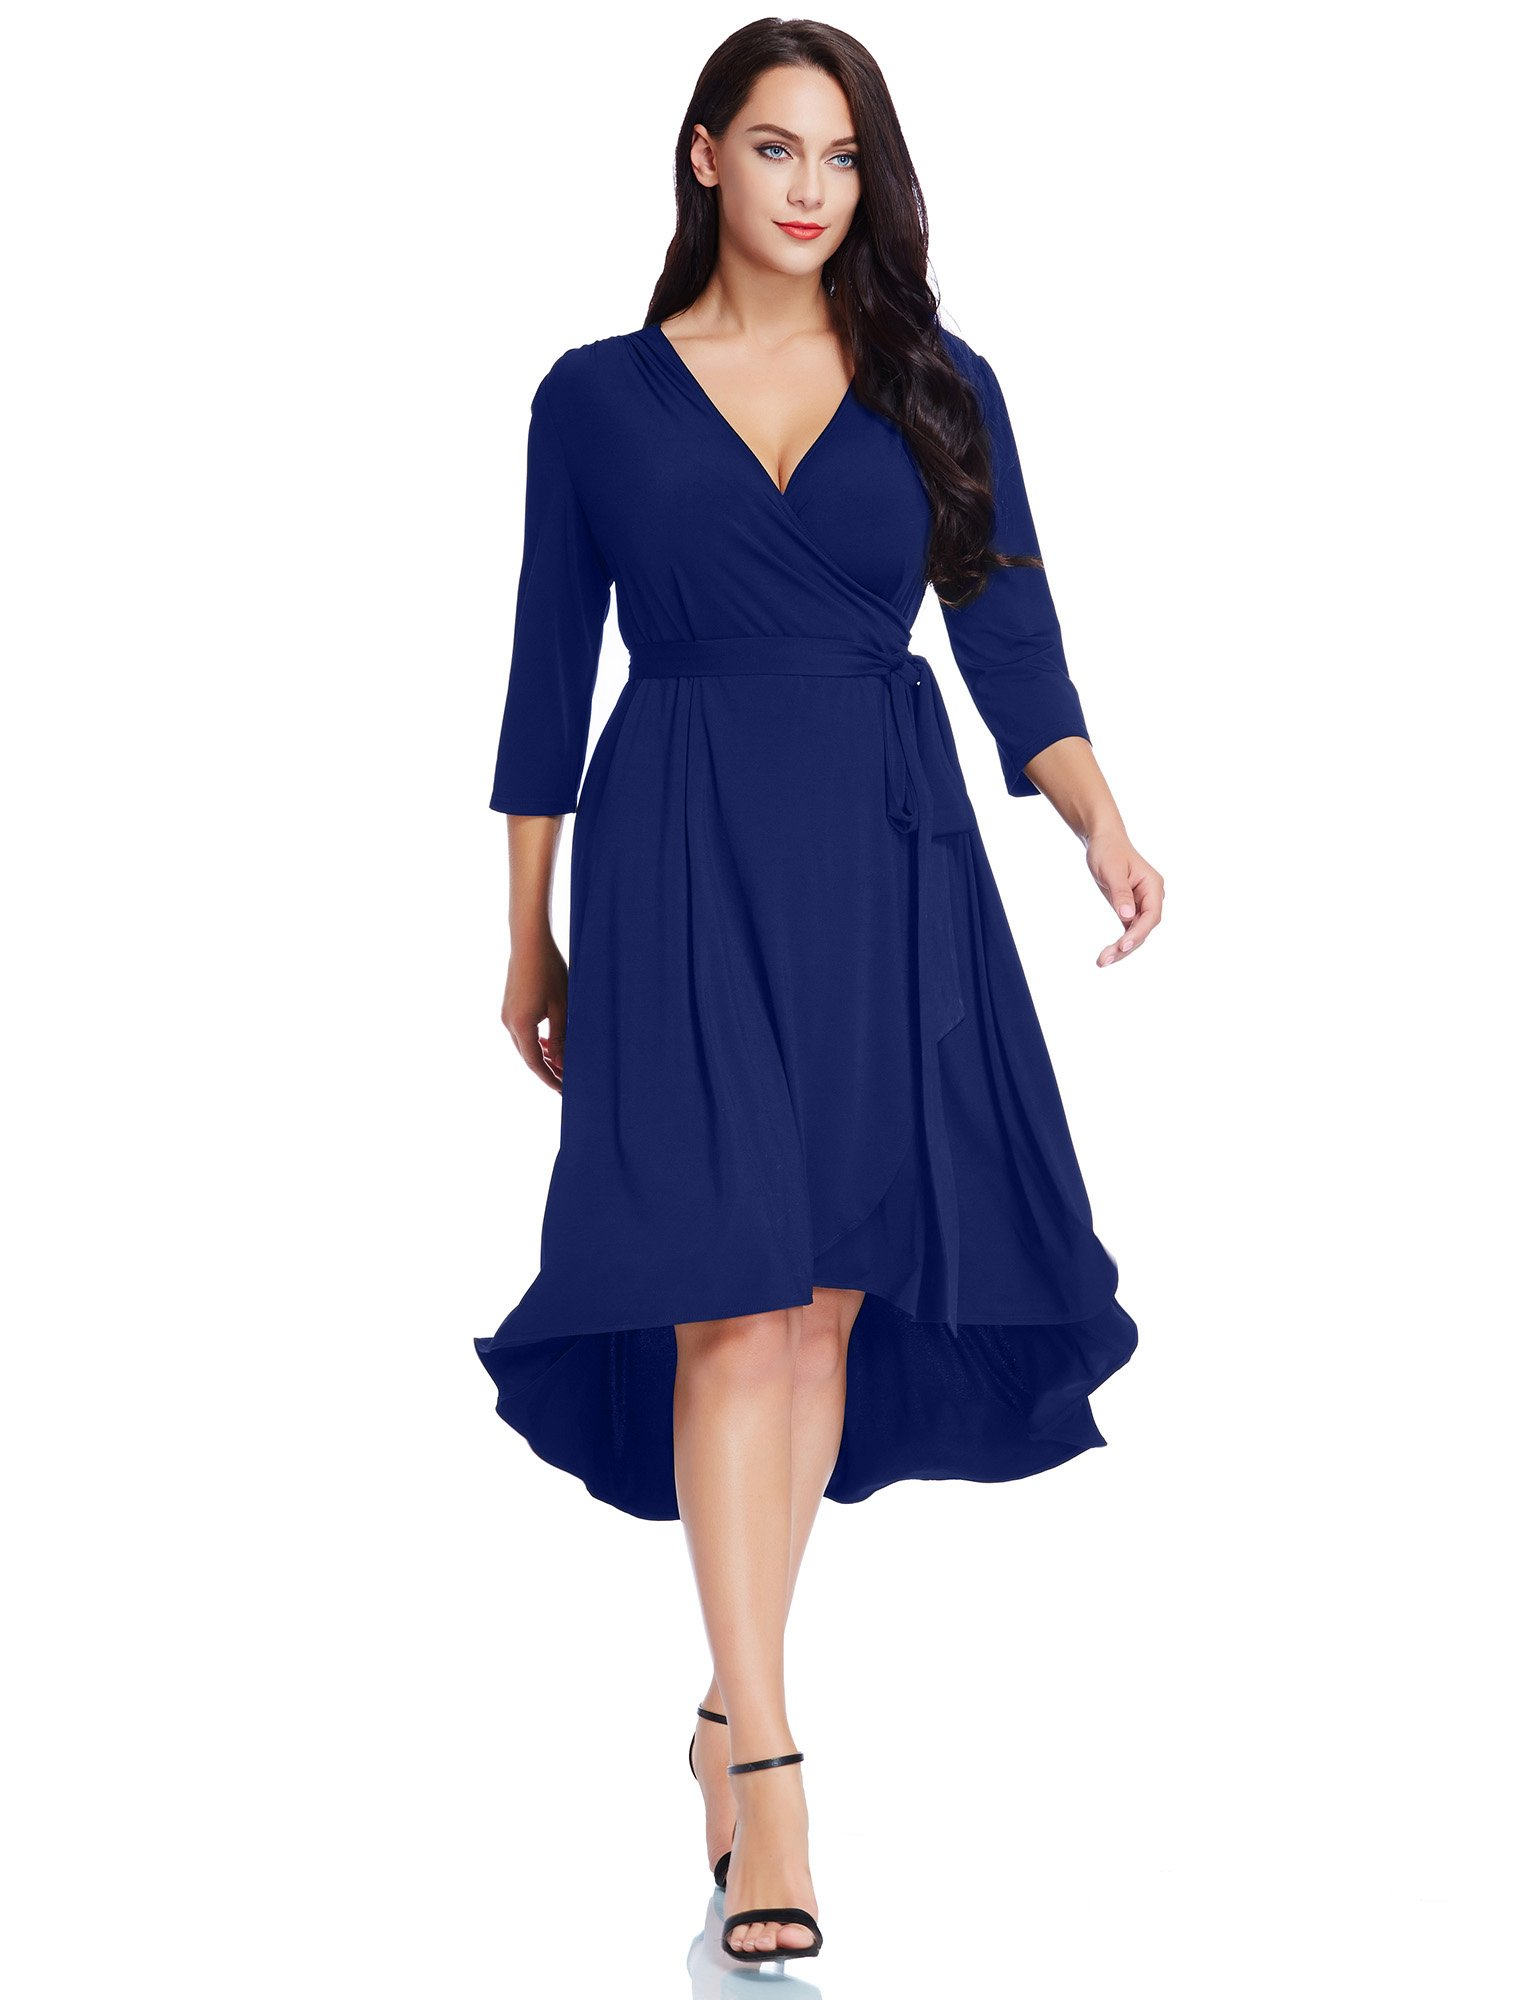 GRAPENT Women's Plus Size Solid V Neck Knee Length 3/4 Sleeve Hi Lo True Wrap Dress Surplice Flared Skirt Royal Blue Size 1X